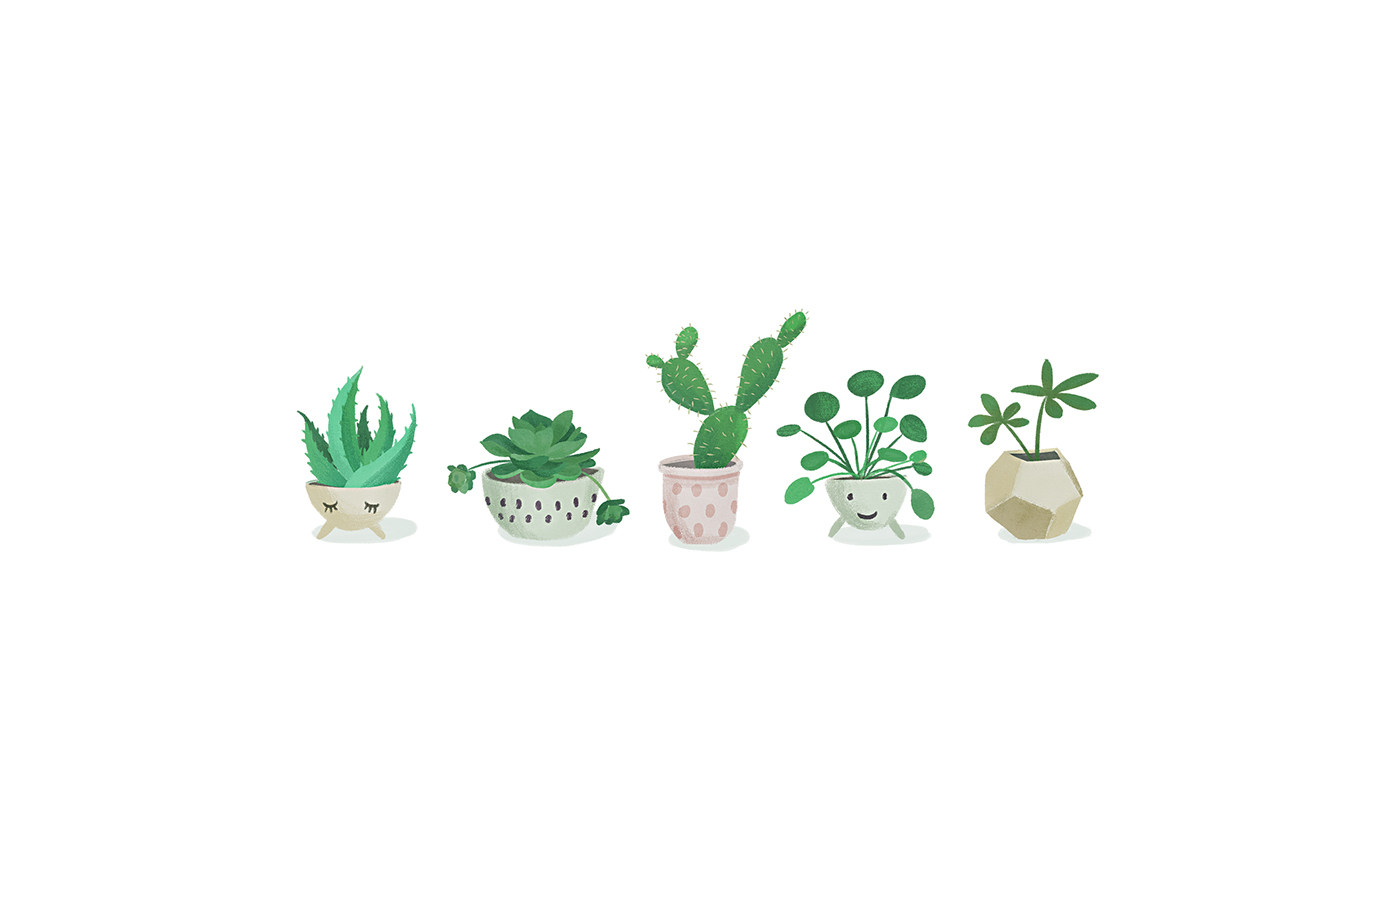 plants potted plants cactus Succulent green greenery garden pattern design  society6 botanical